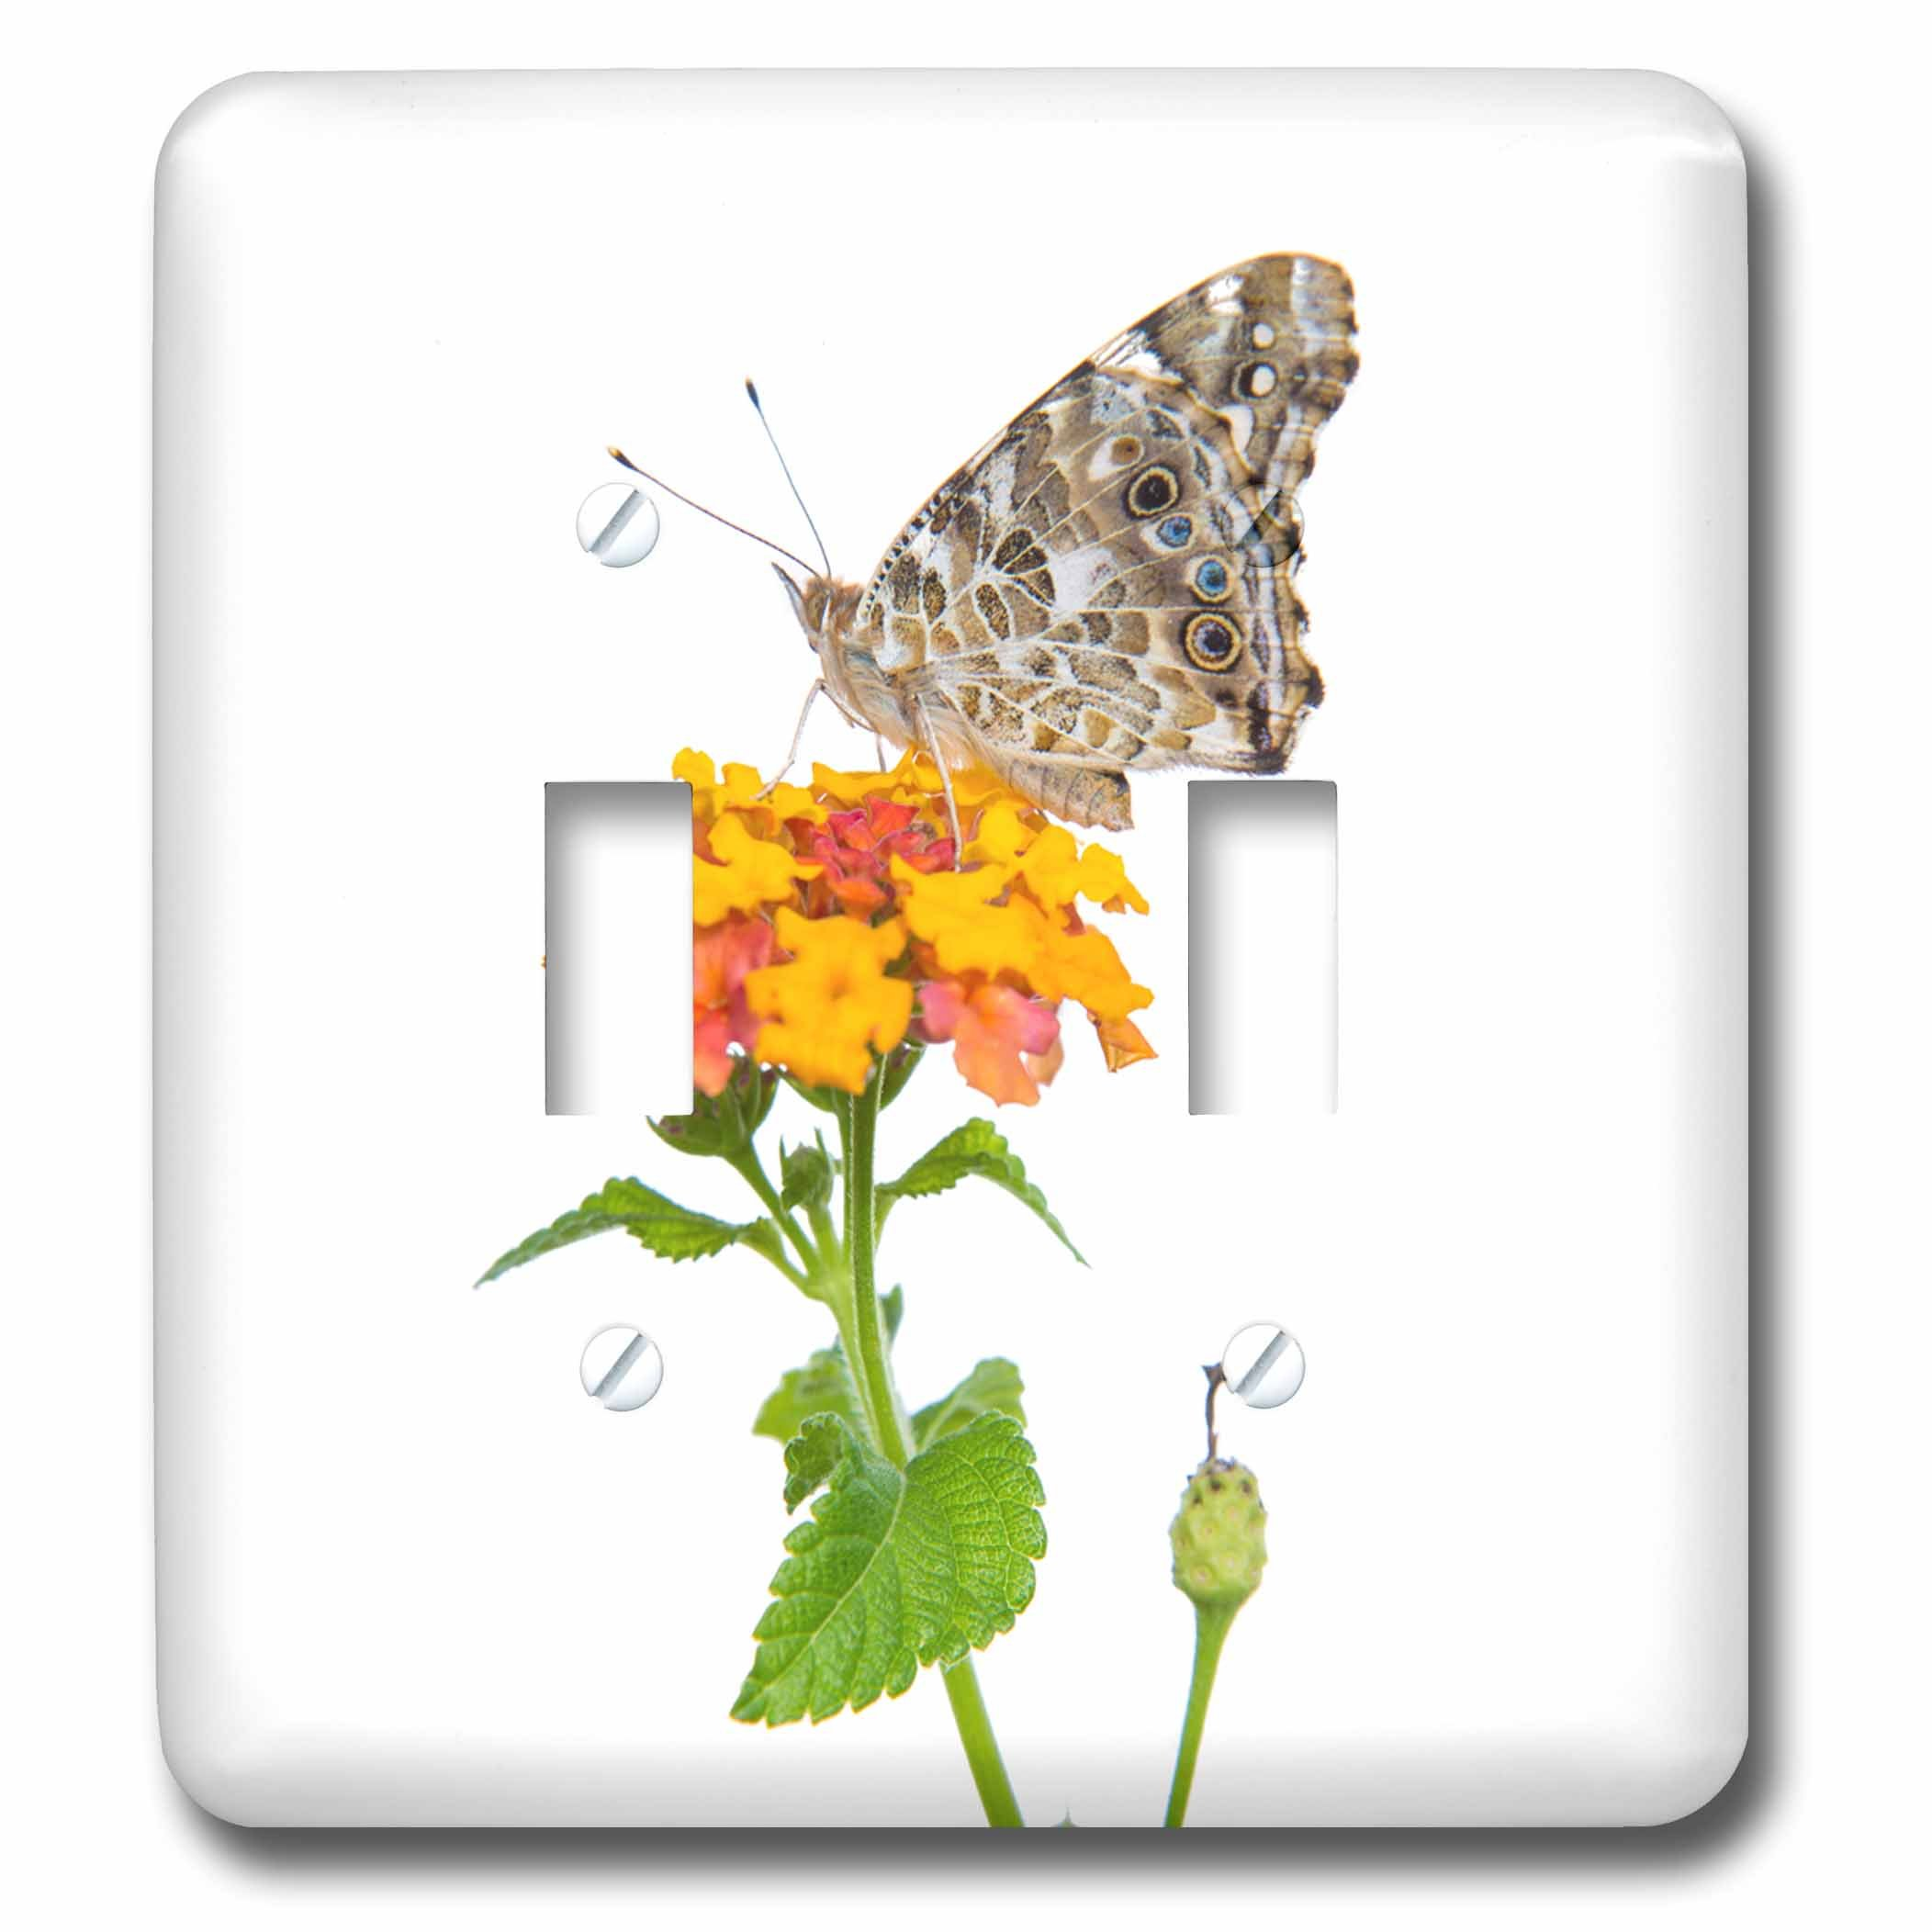 3dRose Danita Delimont - Butterflies - Painted Lady Butterfly on lantana, Marion County, Illinois - Light Switch Covers - double toggle switch (lsp_259337_2)